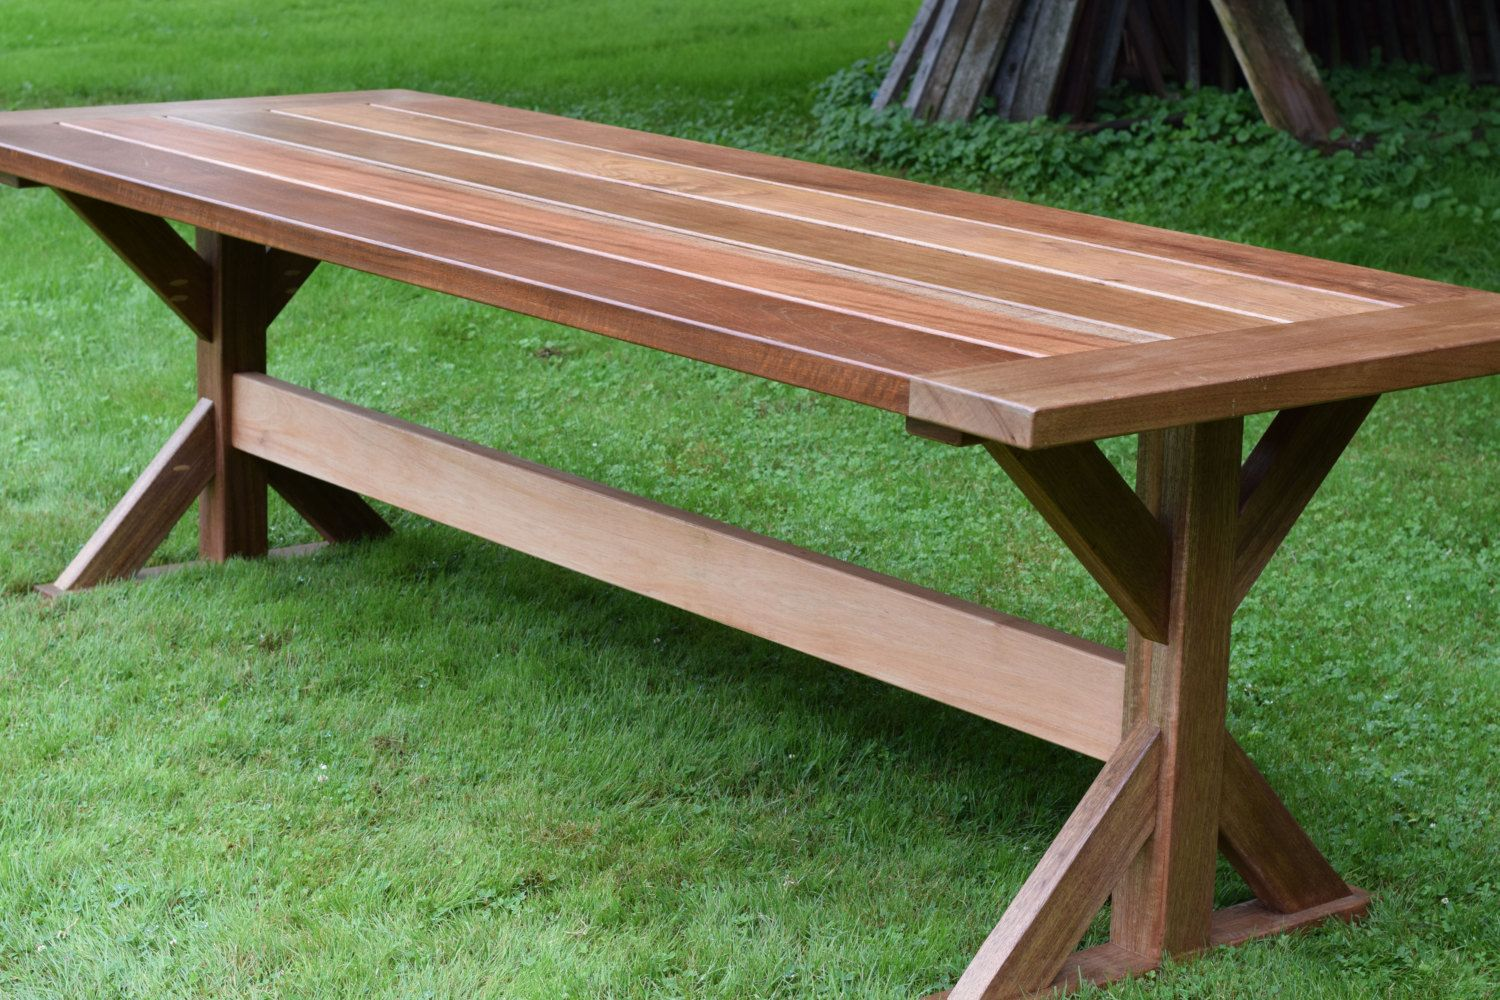 Popular Items For Outdoor Furniture On Etsy Outdoor Dining Table Outdoor Dining Trestle Dining Tables